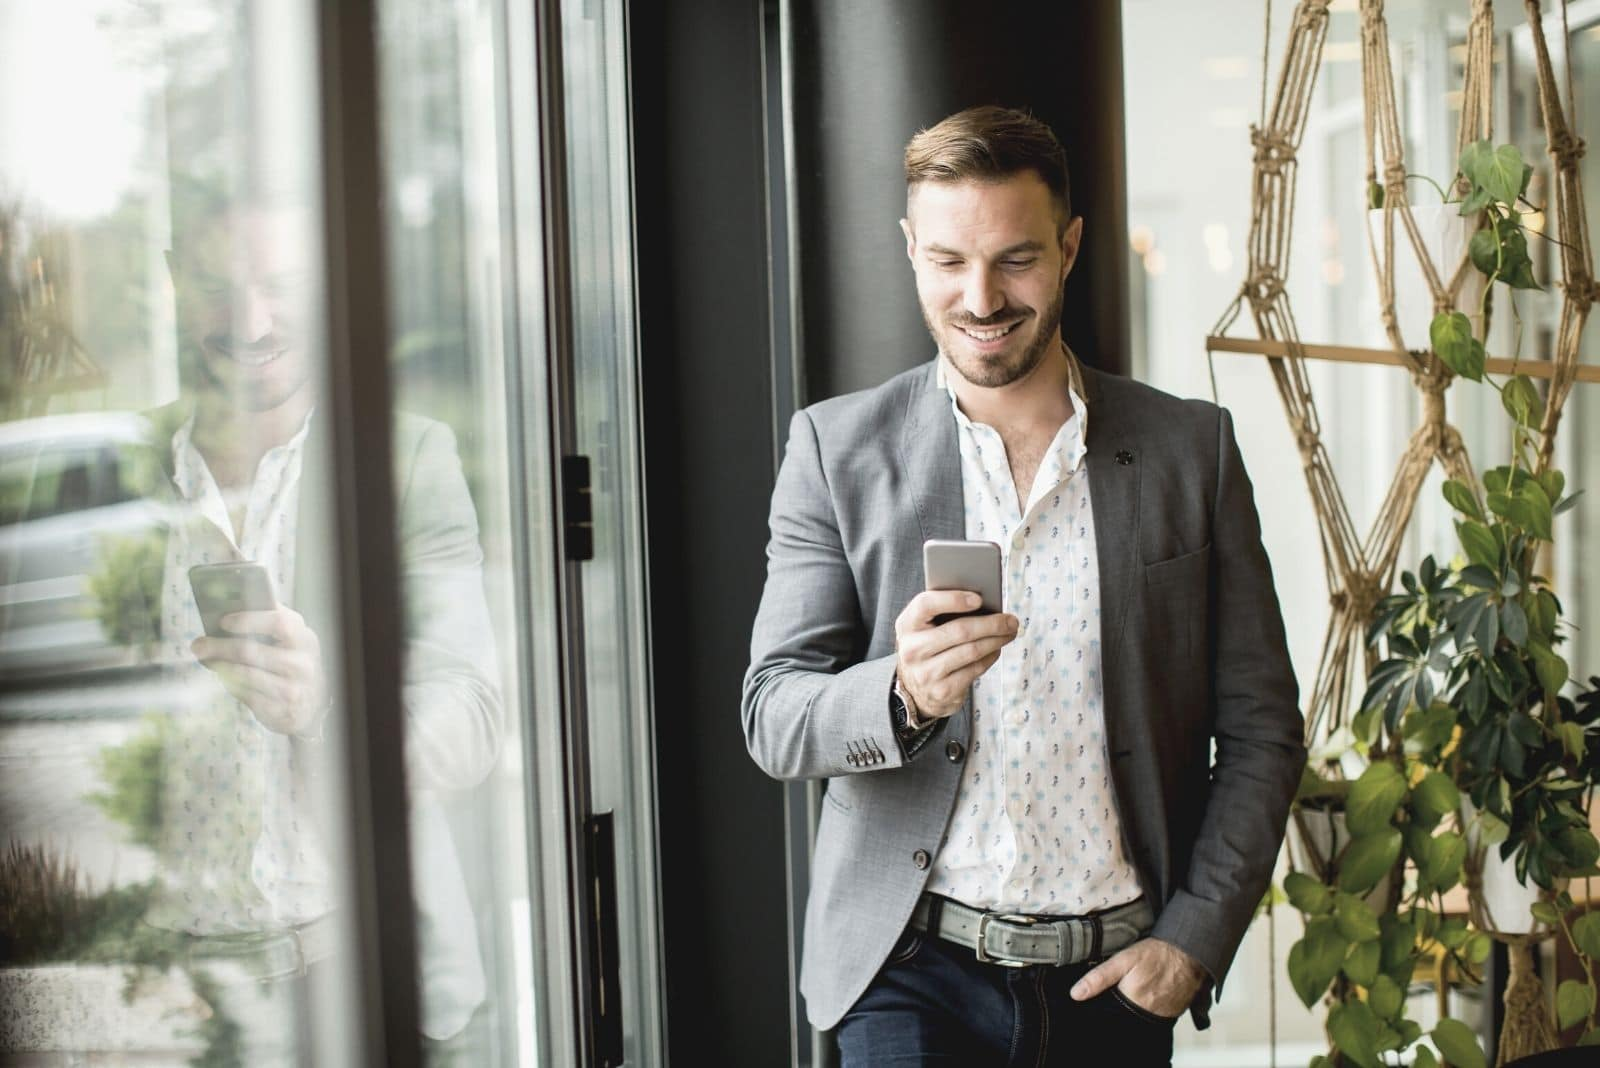 man standing inside the office smiling and looking at his phone with one hand on his pocket